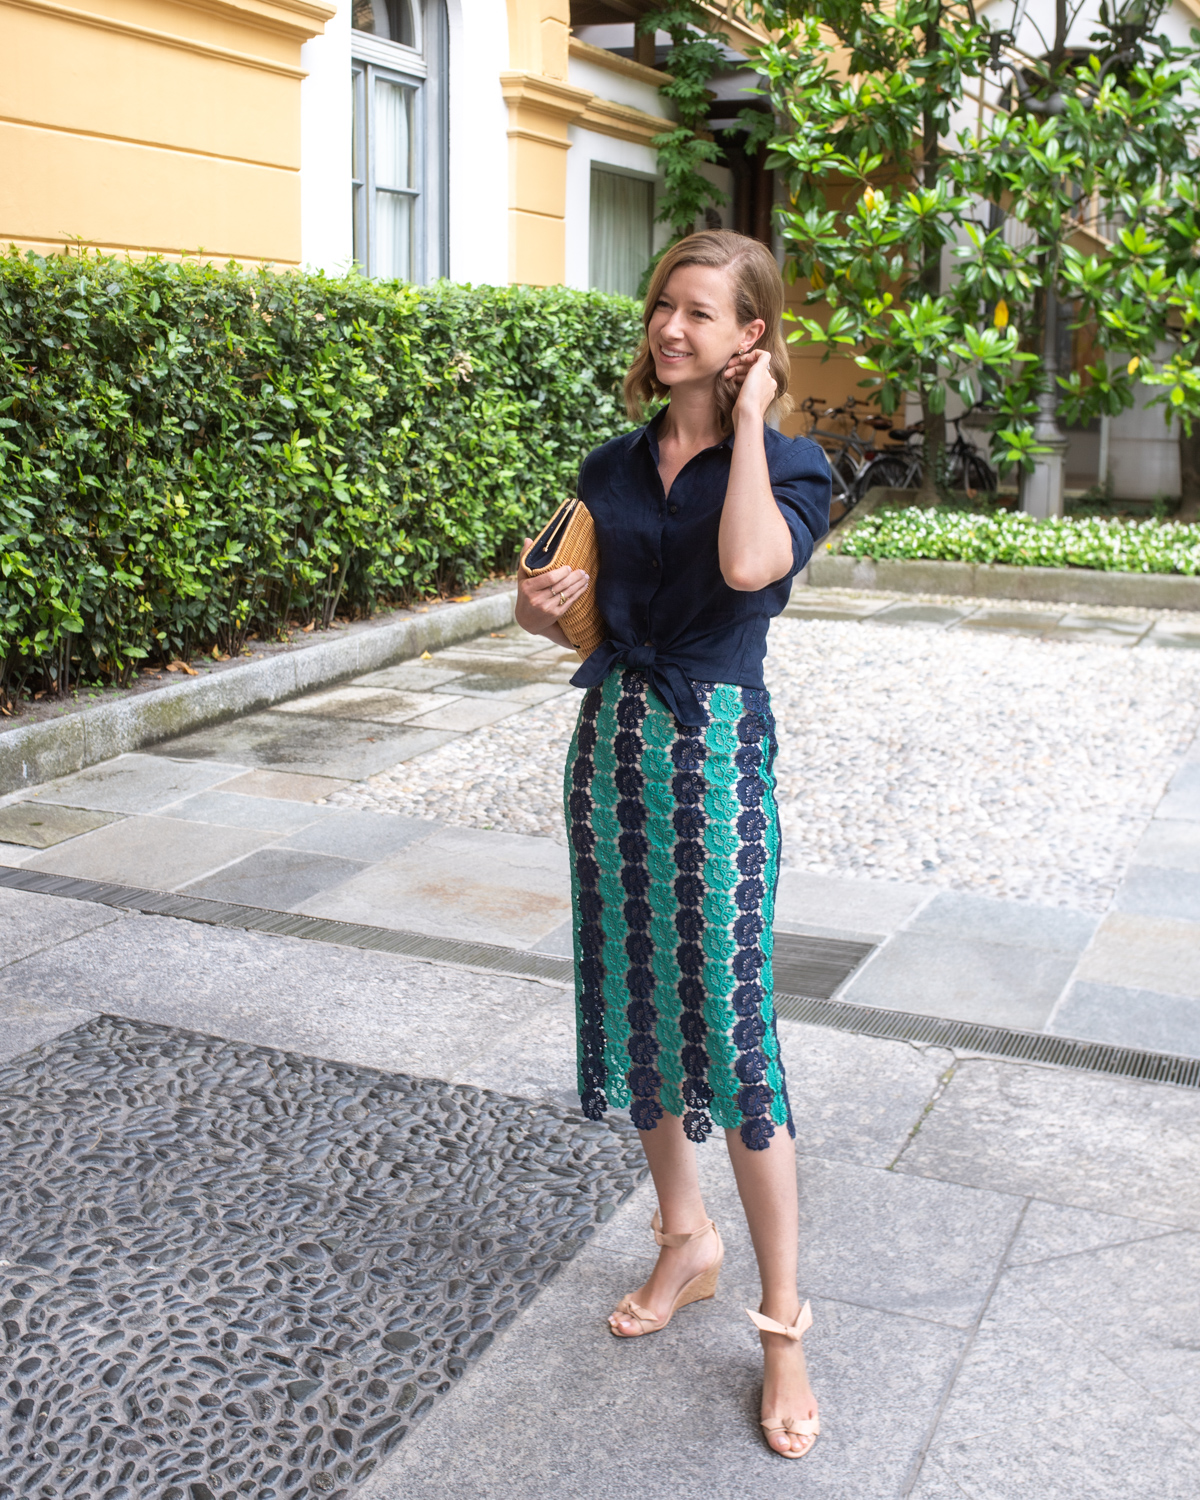 Stacie Flinner Pucci Lace Skirt Daily Look